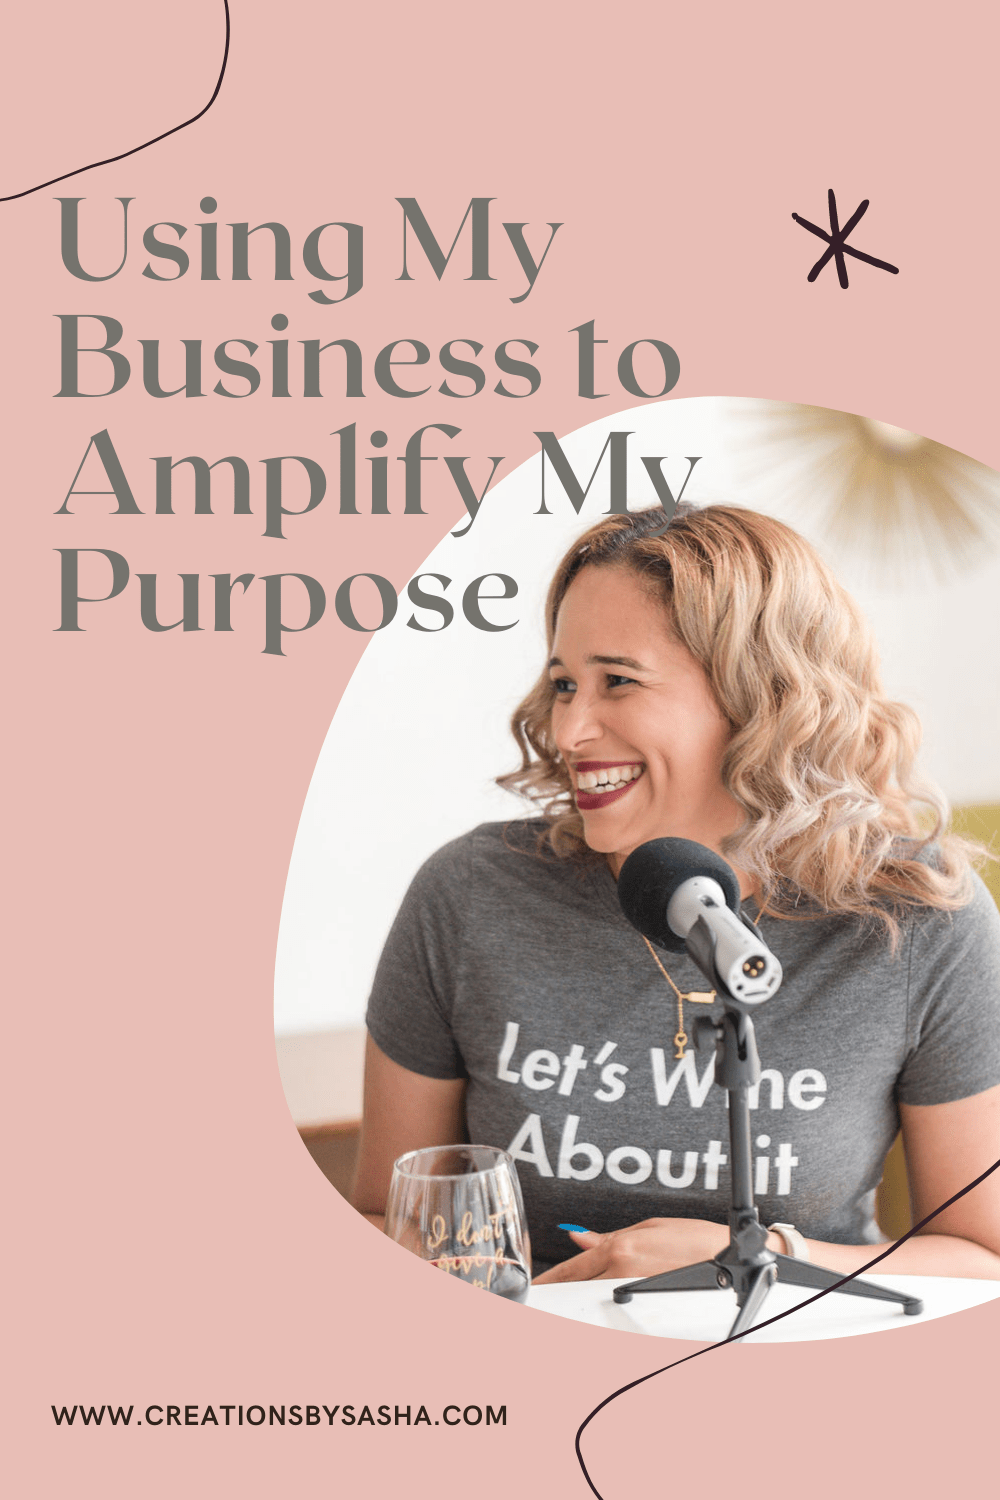 Using My Business to Amplify My Purpose - Sasha sitting in front of a microphone smiling